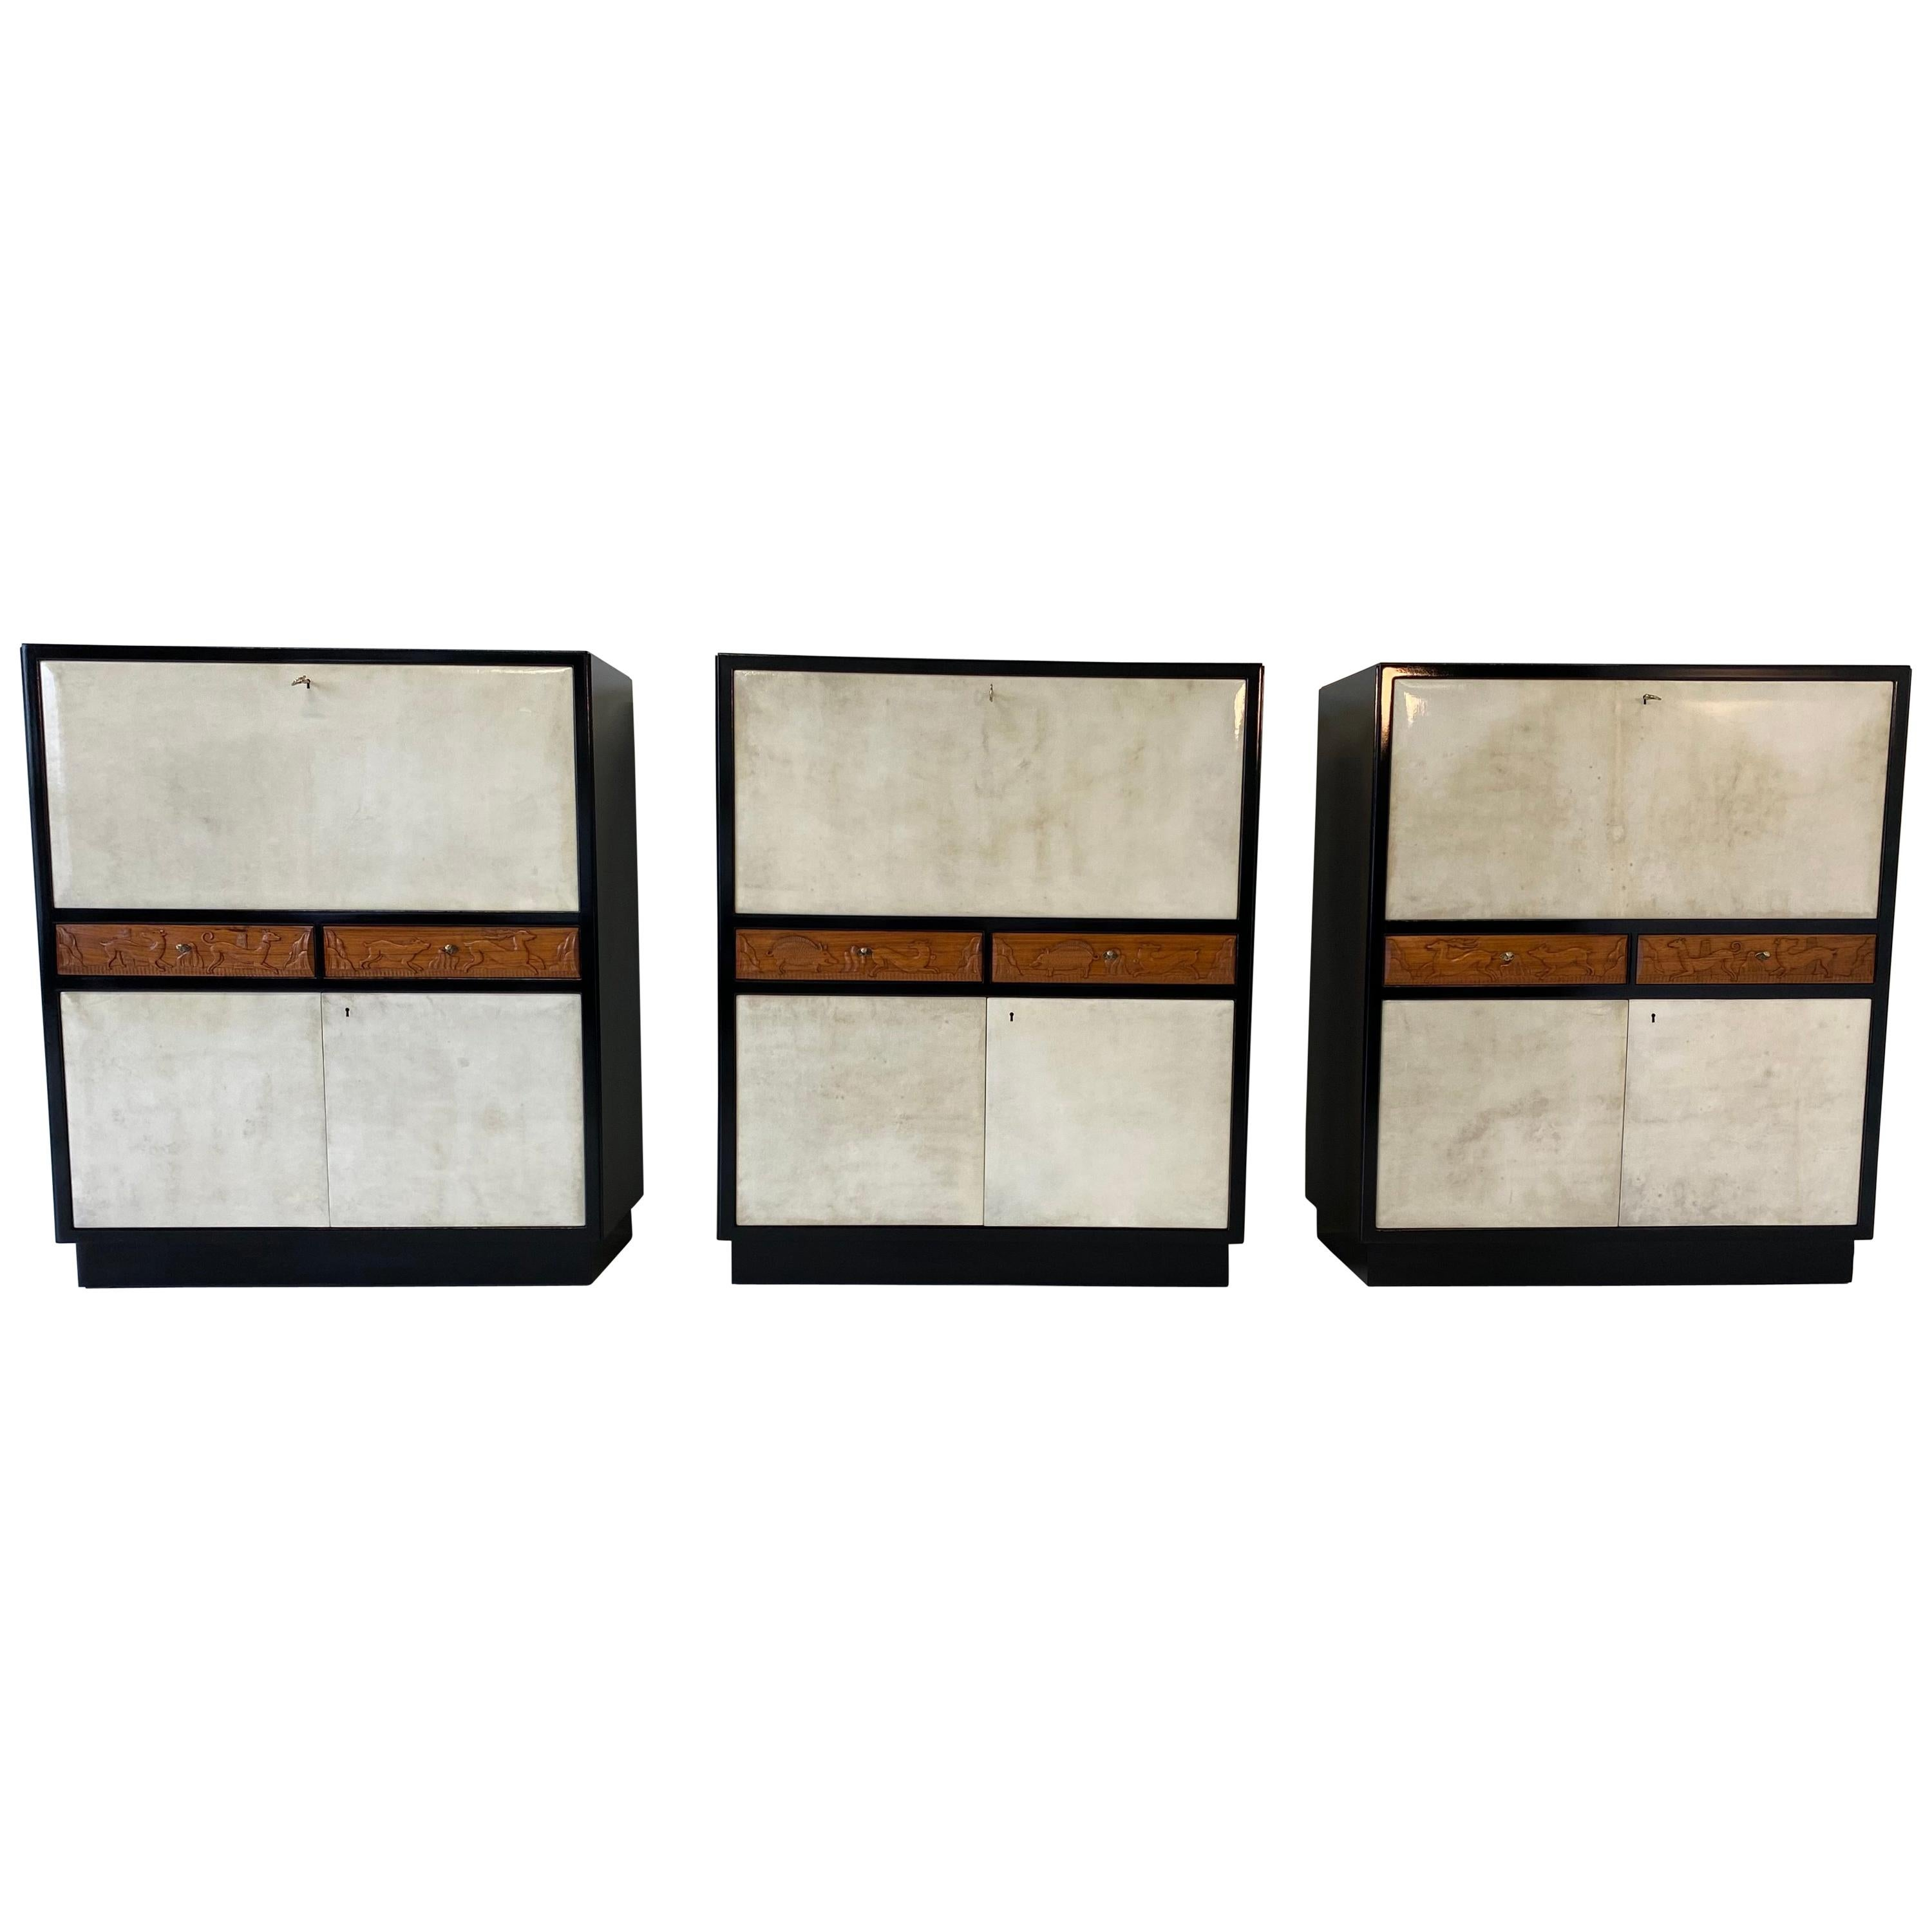 Set of Three Italian Art Deco Black and Parchment Cabinet, 1940s